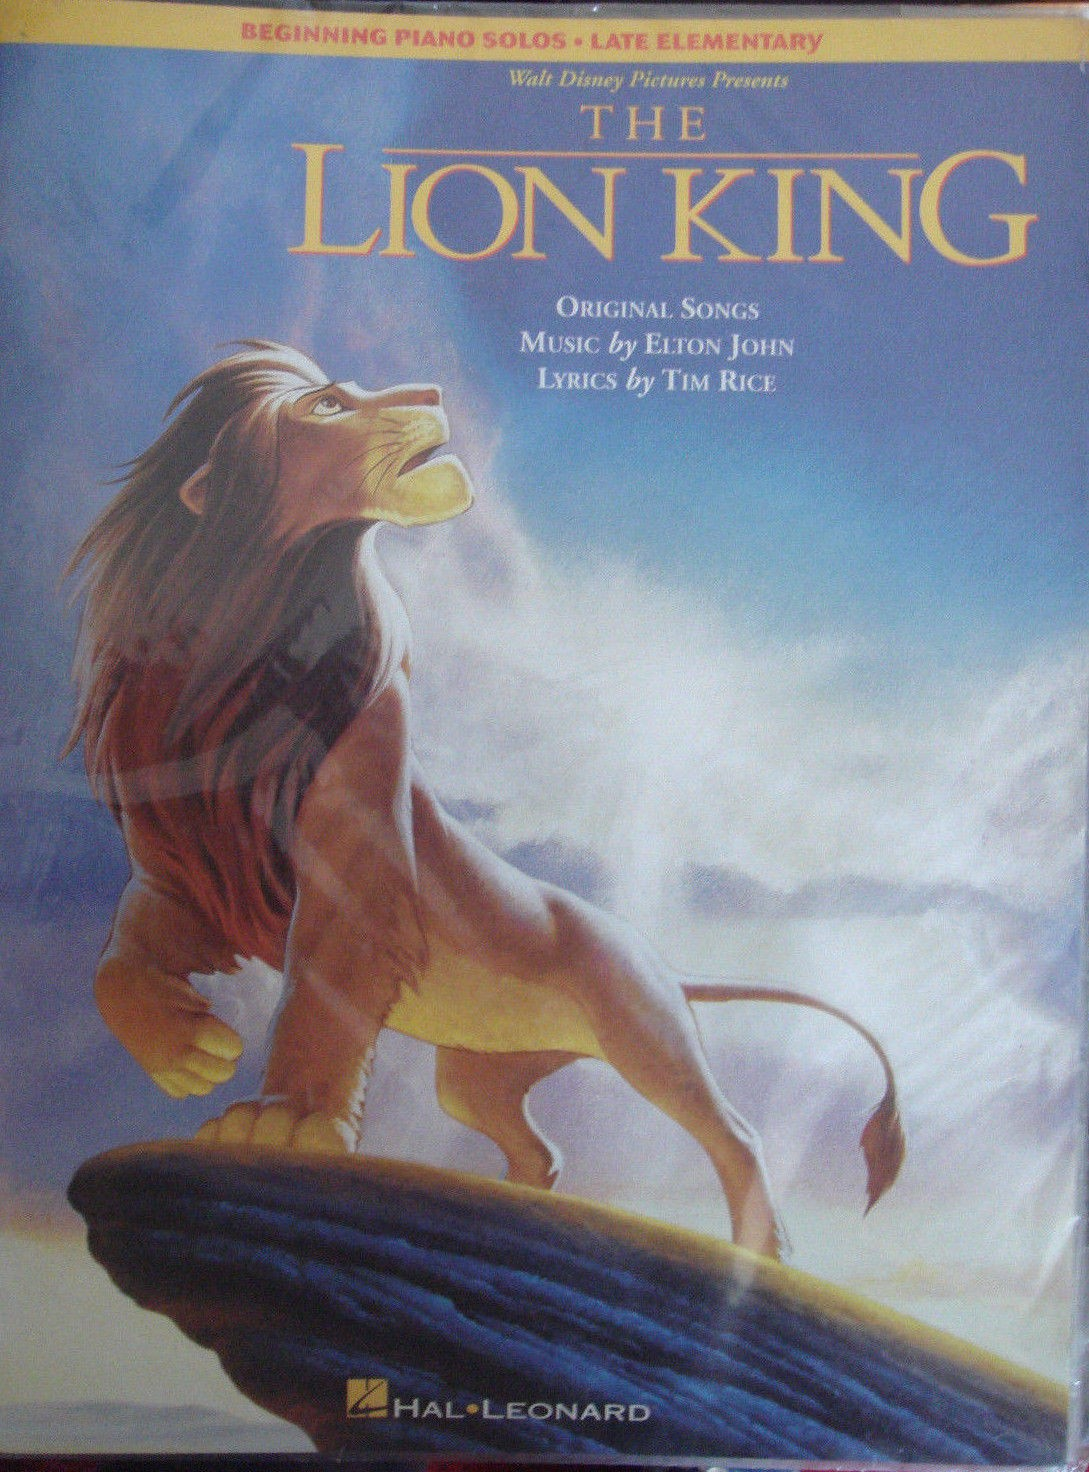 The Lion King Beginning Piano Solos Late Elementary Book Pub by Hal Leonard S30